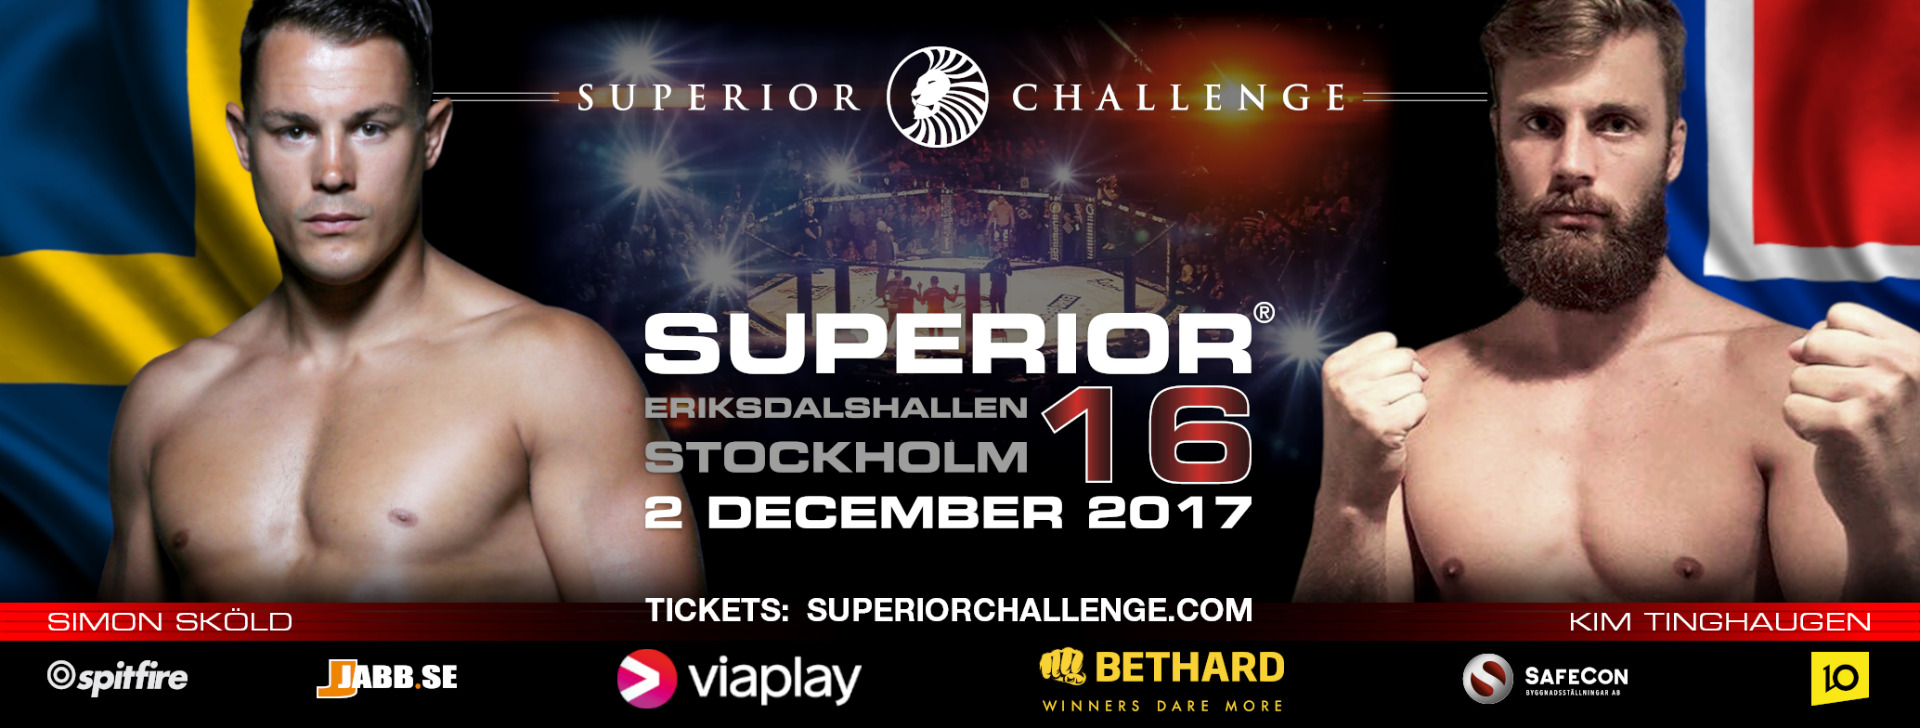 Sweden's most well know MMA fighter Simon Sköld is set against Kim Tinghaugen